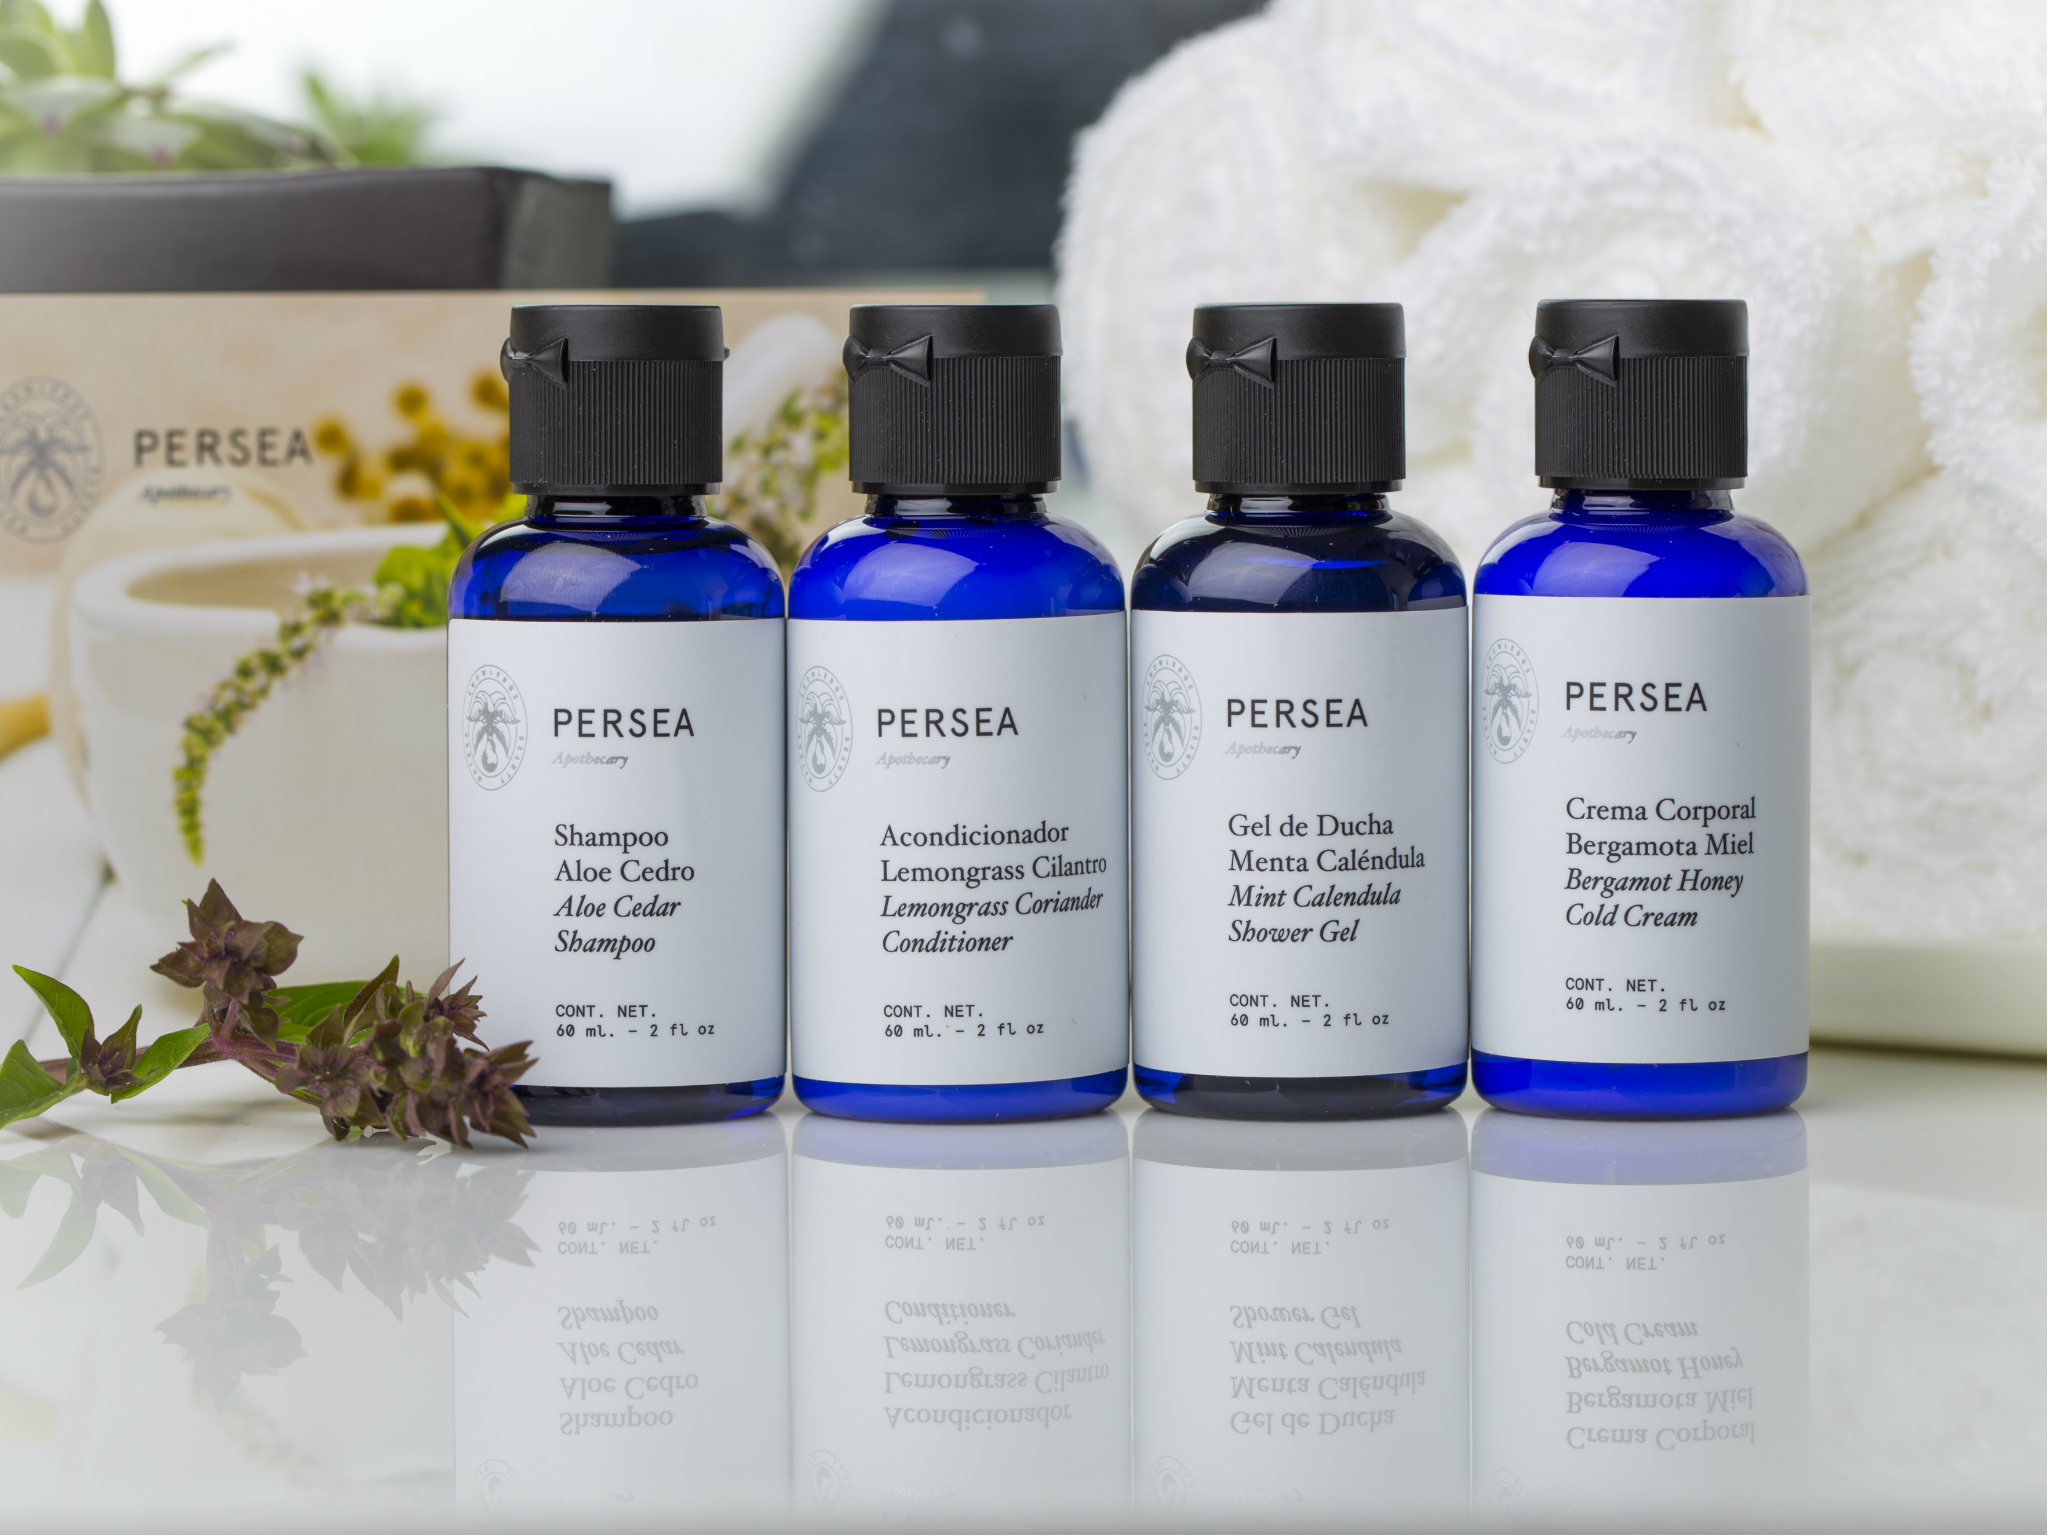 Persea Apotehcary